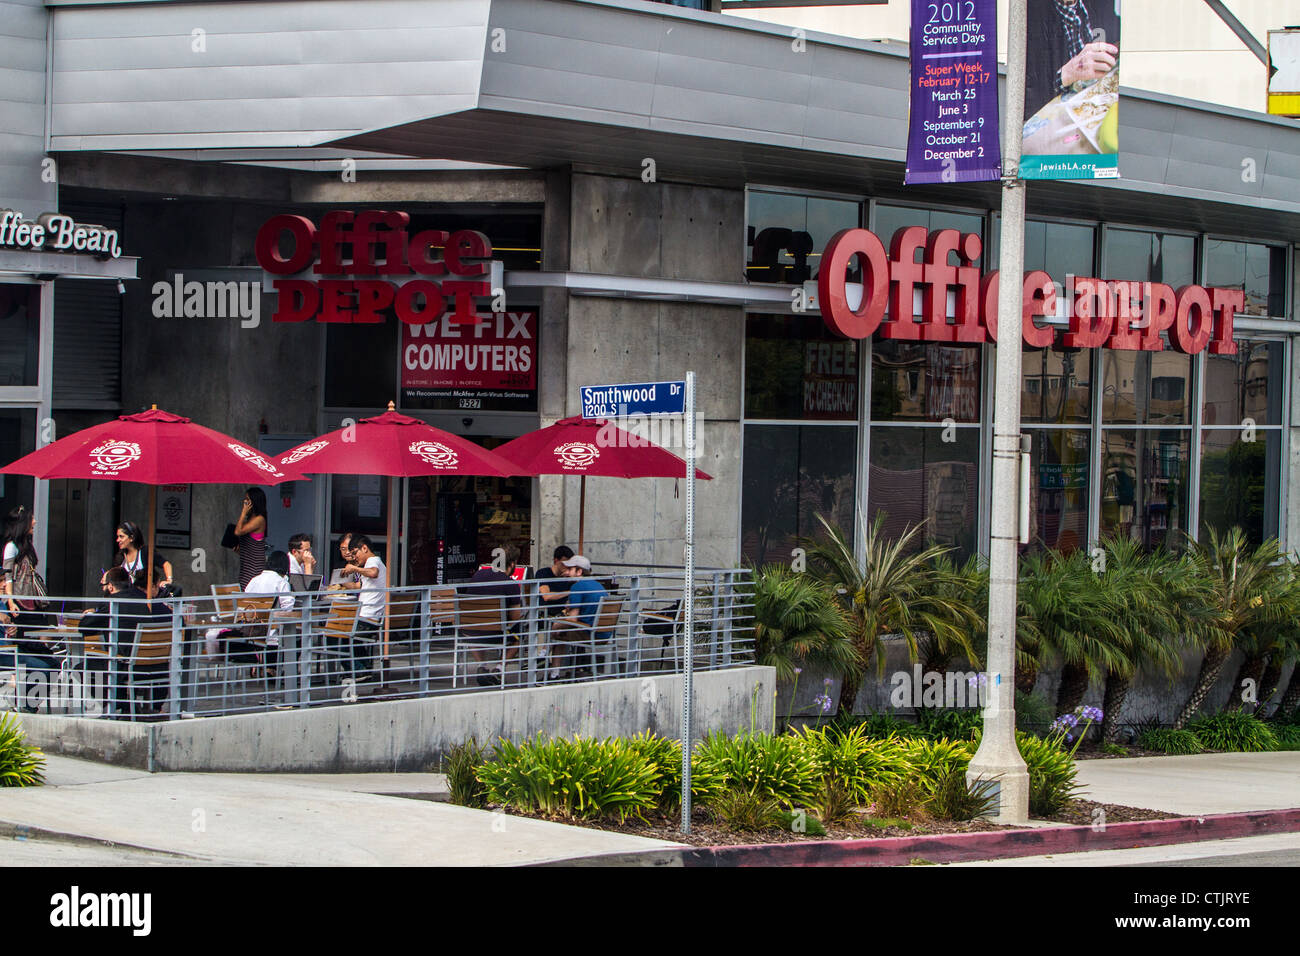 Office Depot Store On Pico Blvd In Los Angeles With An Outdoor Patio And A  Coffee Bean Coffee Shop Next Door